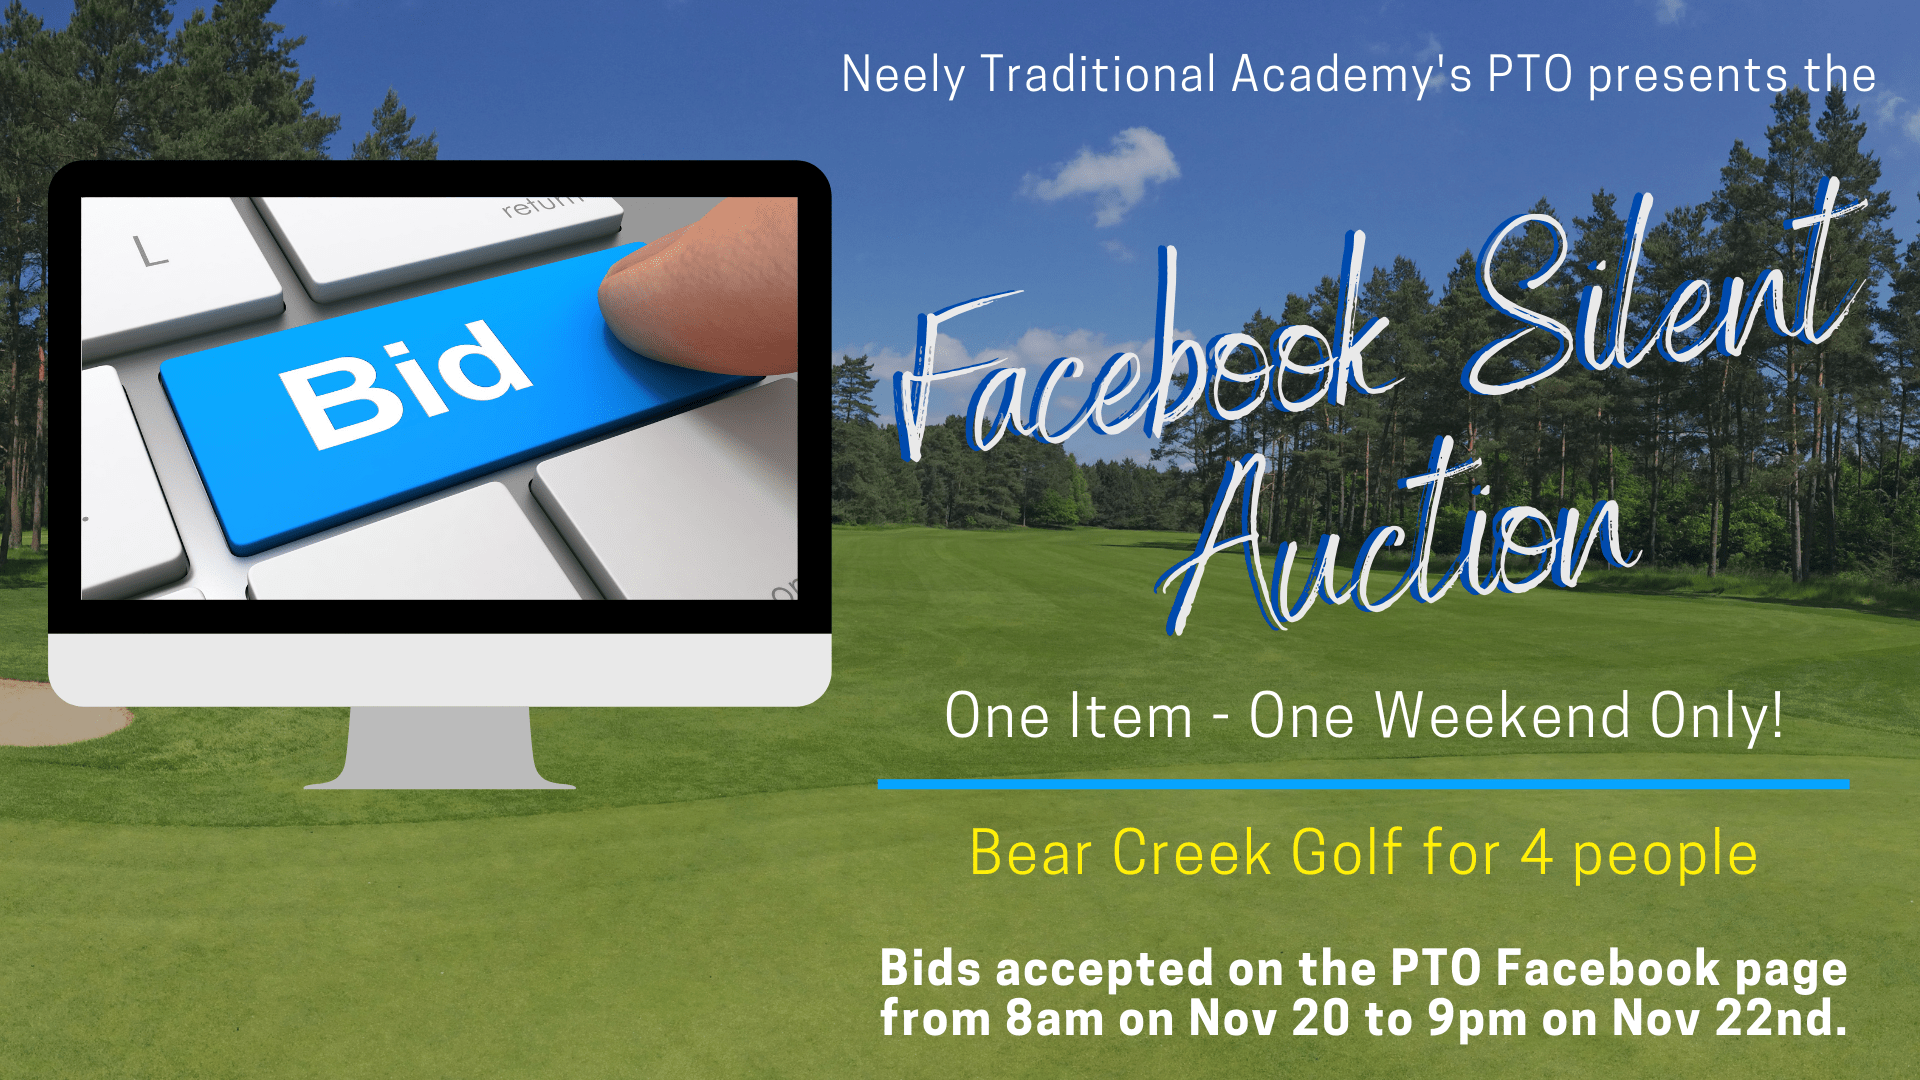 Our first Facebook Silent Auction is this weekend! Visit our page from 8am on Nov 20 to 9pm on Nov 22 to bid on our Bear Creek Championship Course golf round for 4 people! The cart is included and any open tee time after 10am is available. Certificate expires on December 15, but the best time to hit the links is NOW, anyway! The value of this item is up to $260! Opening bid is $150.